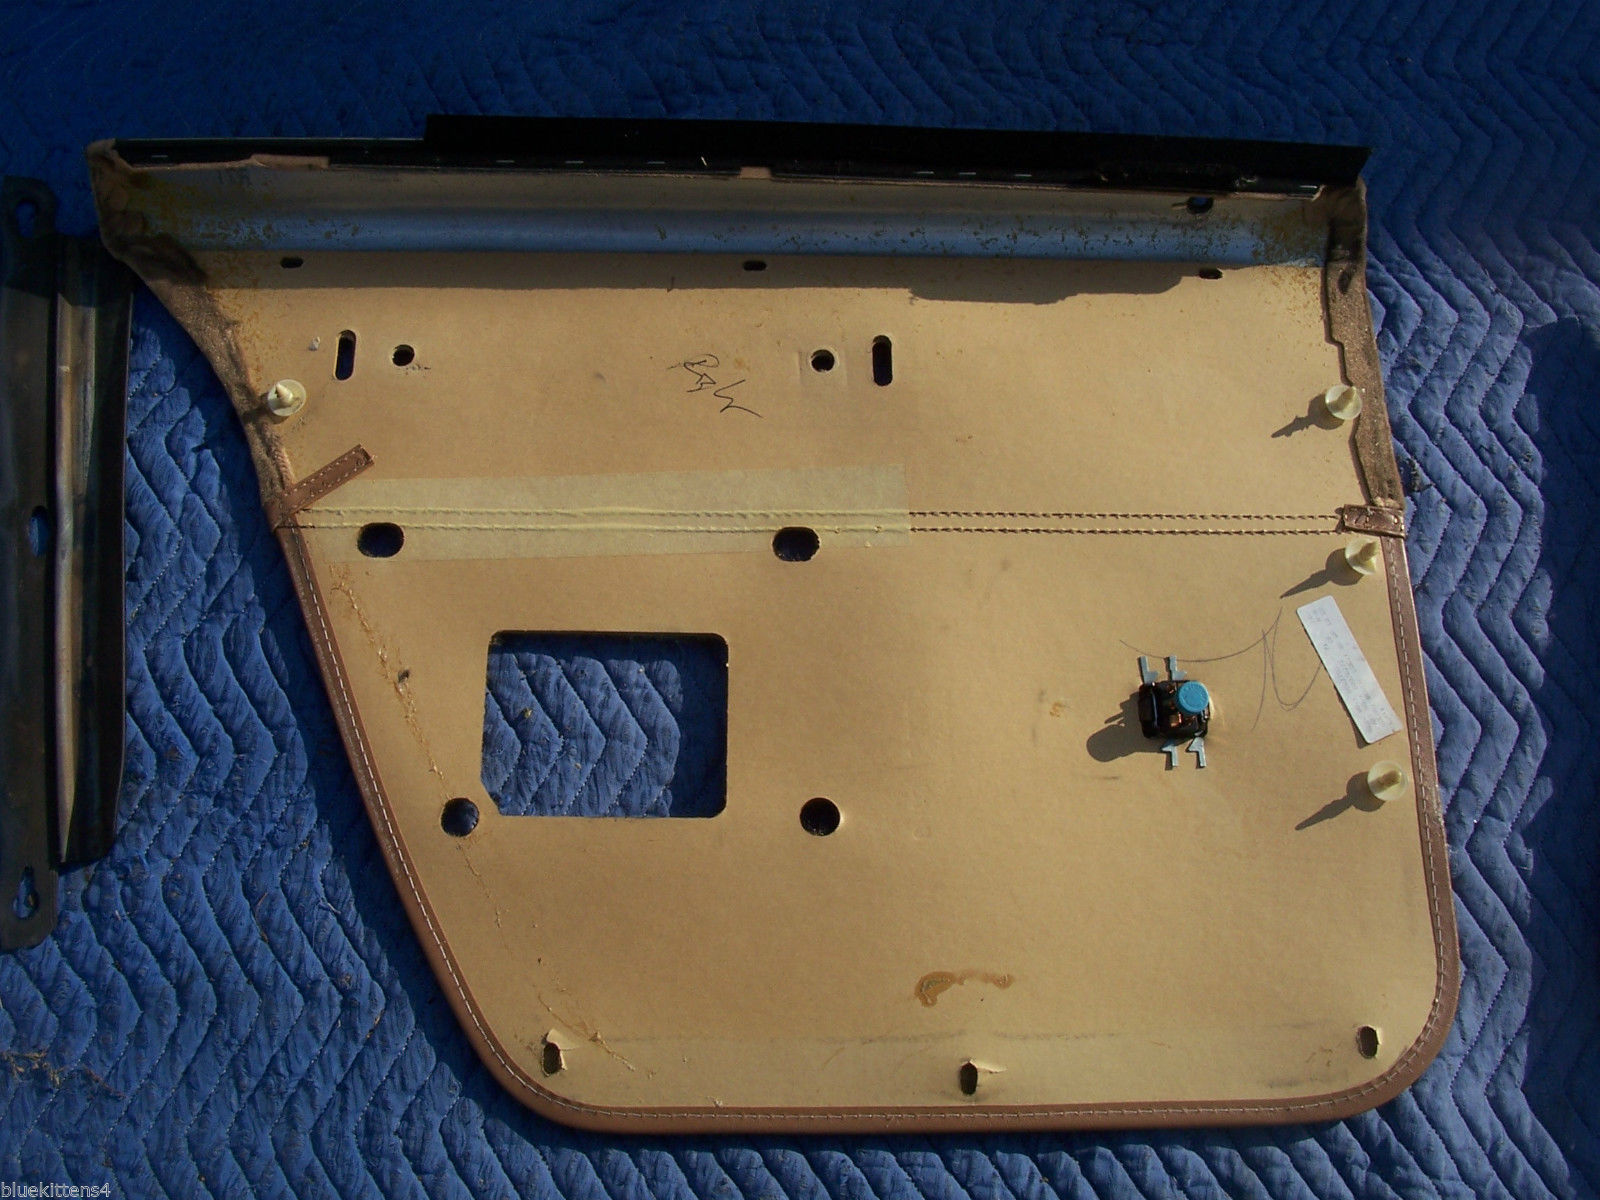 1990 CHEVY CAPRICE ESTATE WAGON DOOR PANEL RIGHT REAR USED OEM CHEVROLET PART image 9